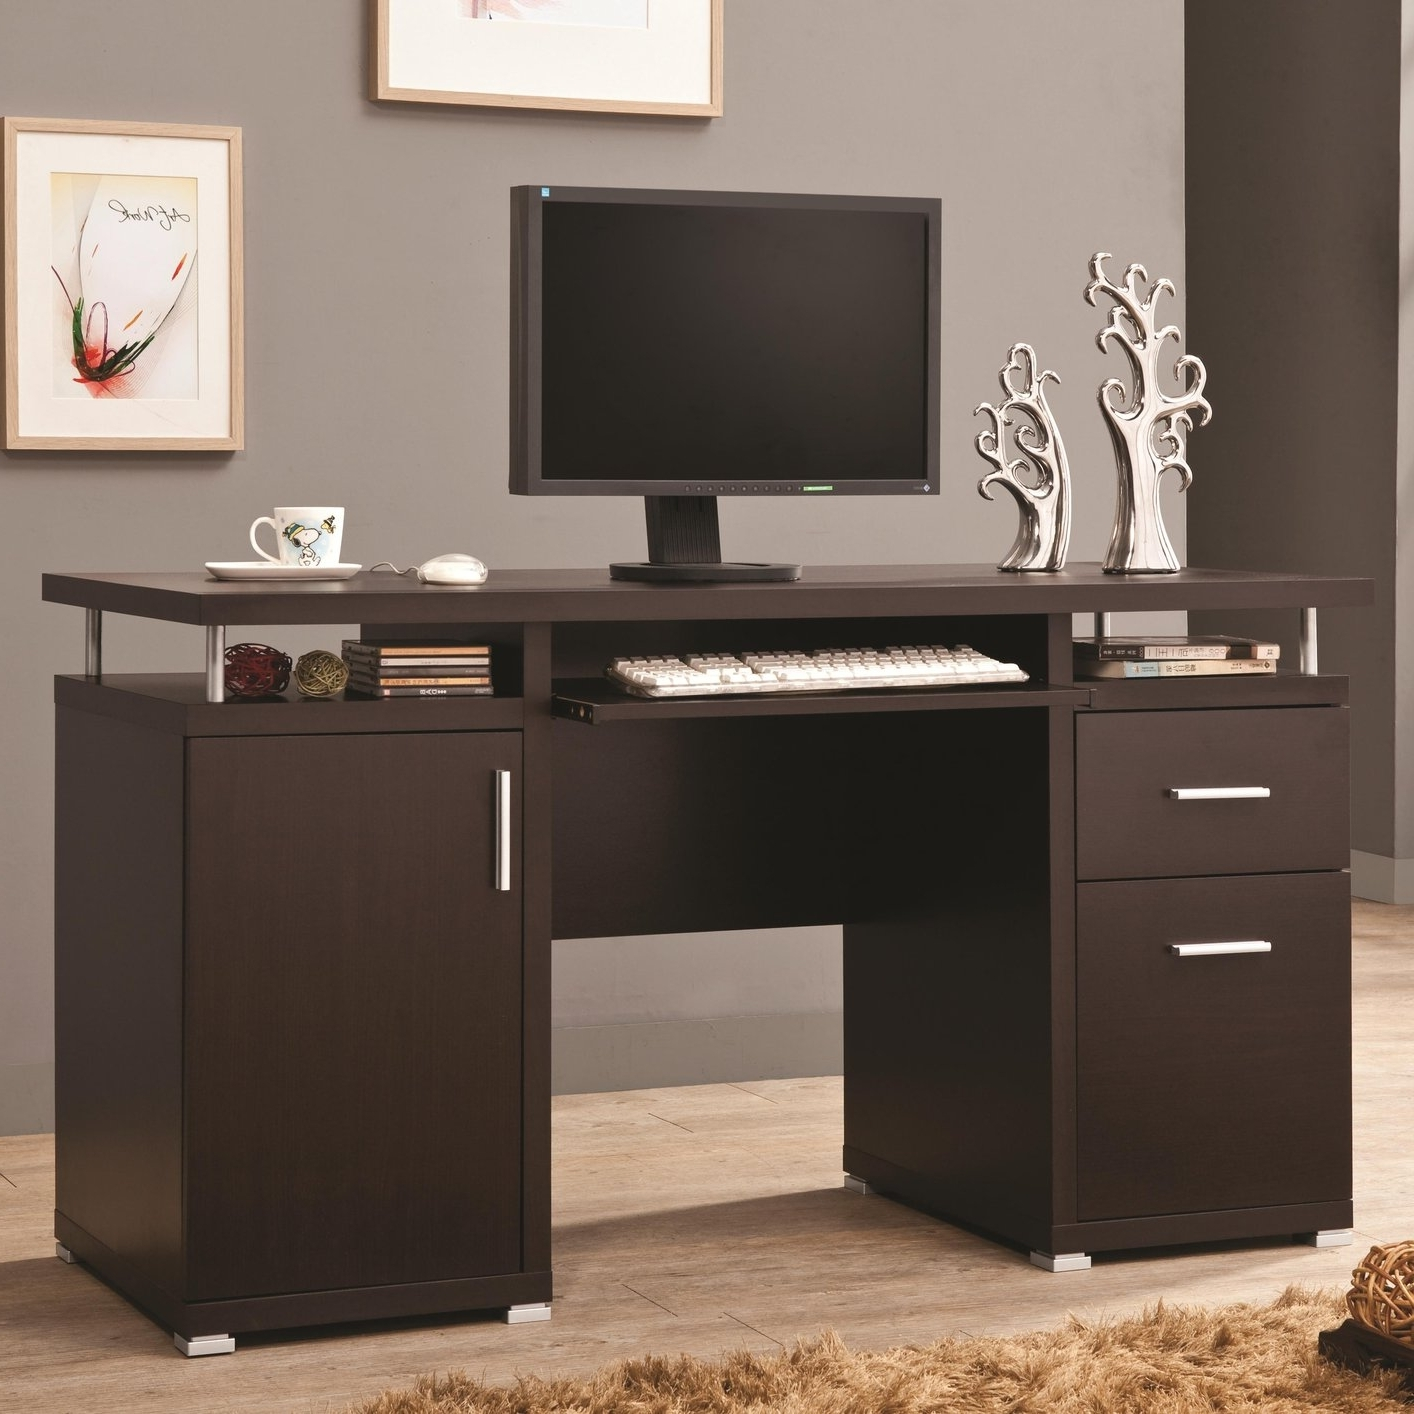 Most Recent Computer Desks With Drawers With Top 78 Superb Home Desk With Hutch Small Computer White Corner (View 8 of 20)